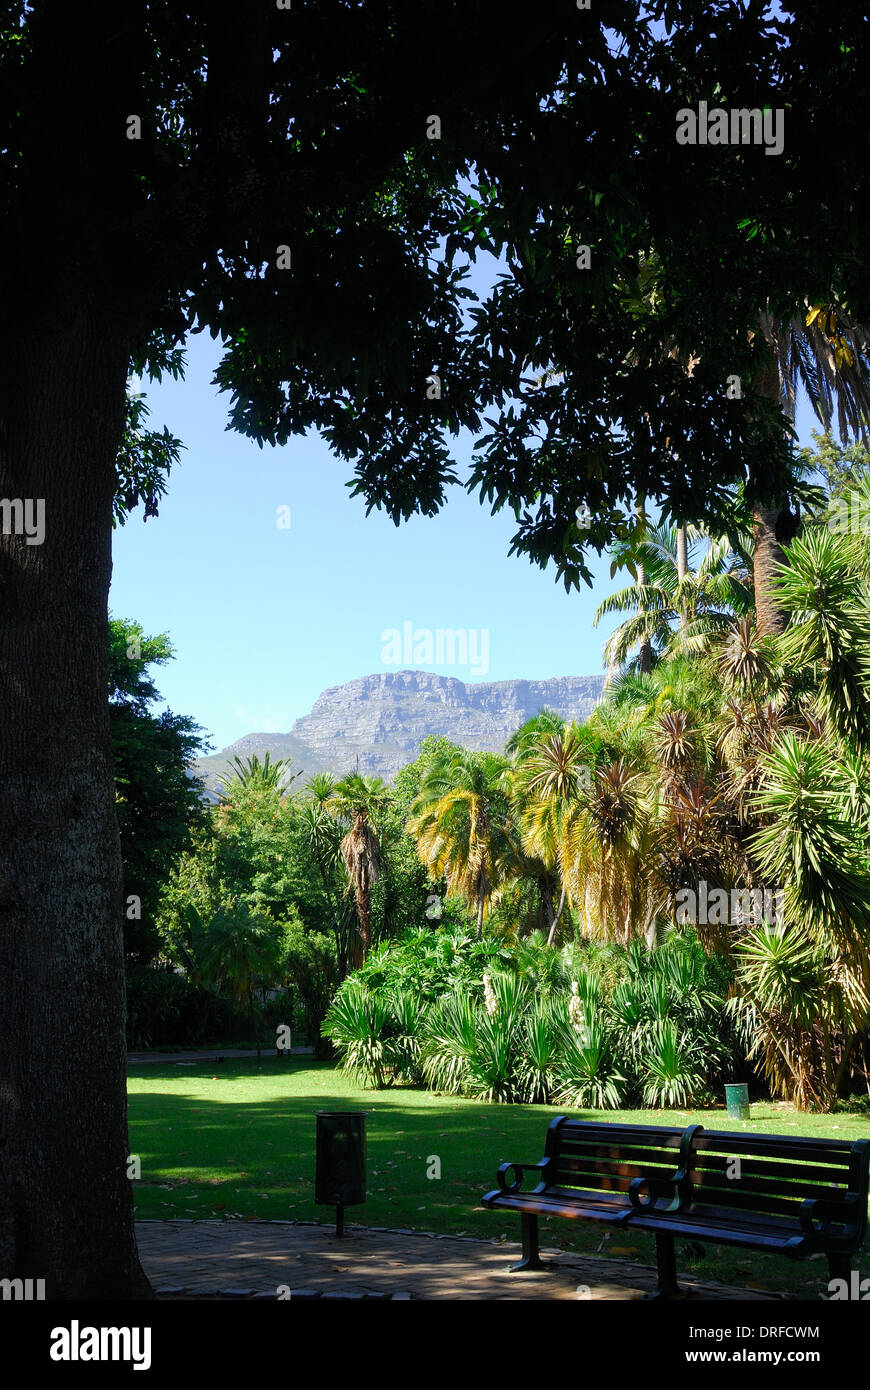 View of Company's garden in Cape town, with Table mountain in the background - Stock Image